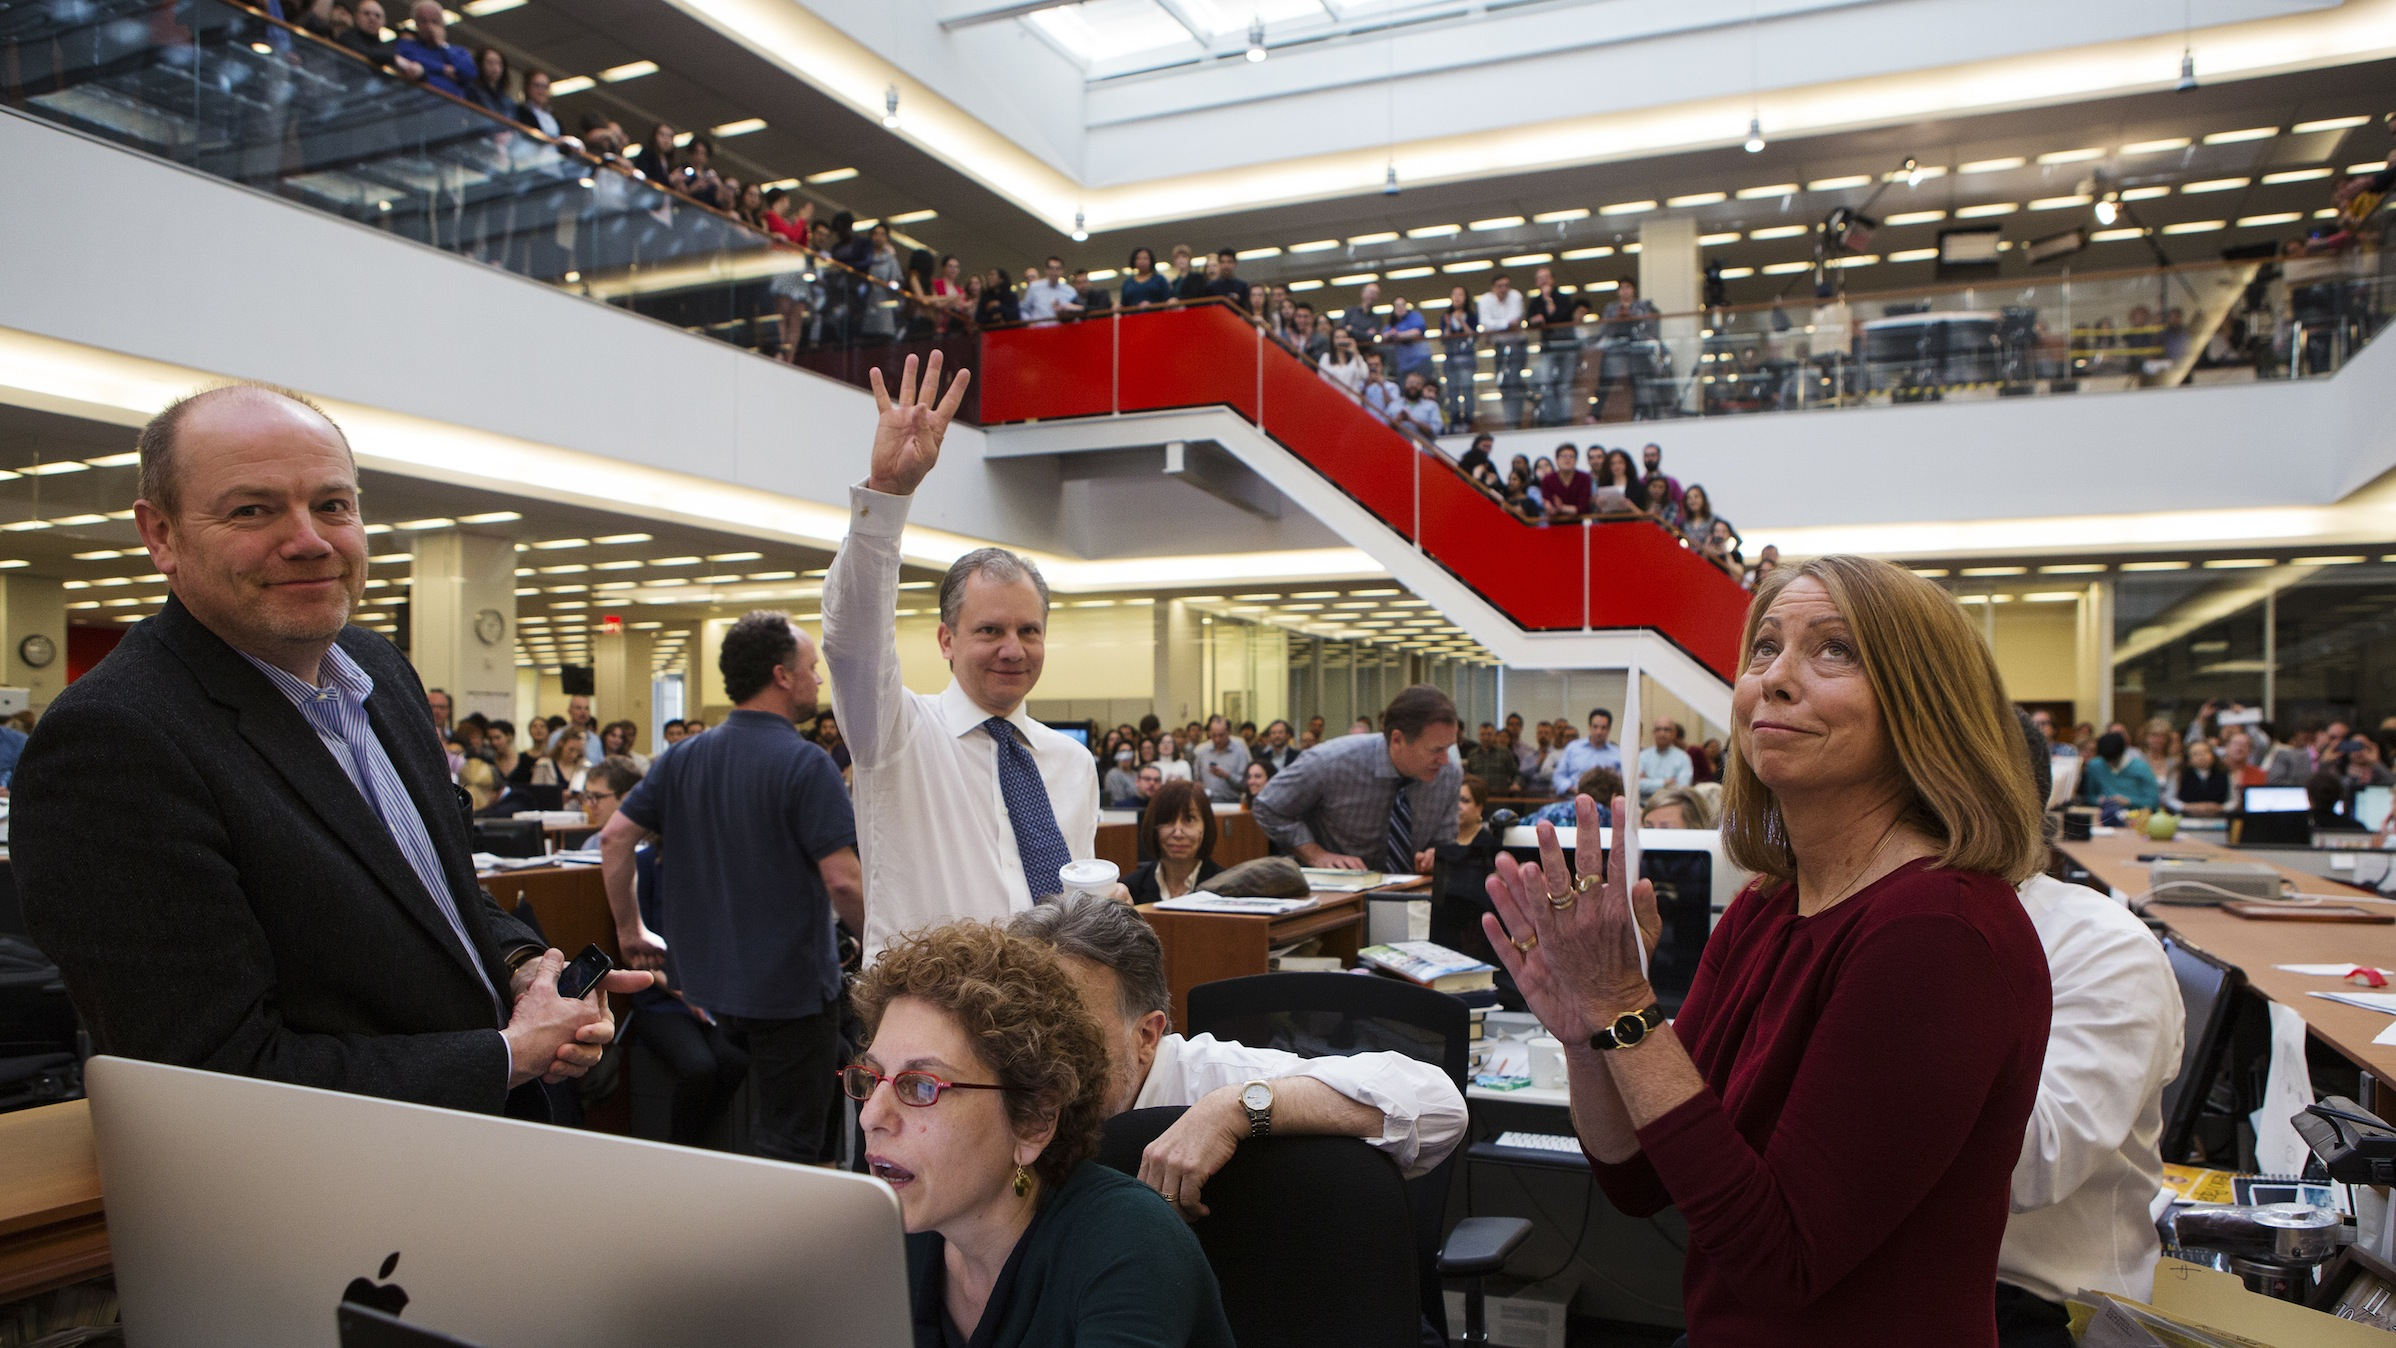 Publisher Arthur Sulzberger Jr. holds up four fingers to indicate the four Pulitzer Prizes won by the New York Times, as winners for the 2013 Pulitzer Prize are announced at The New York Times newsroom in New York April 15, 2013. Also pictured are (from L-R): CEO Mark Thompson, Sulzberger, Assistant Managing Editor Susan Chira, Editorial Page Editor Andrew Rosenthal (obscured by Chira) and Executive Editor Jill Abramson. REUTERS/Ruth Fremson/Pool (UNITED STATES - Tags: MEDIA SOCIETY) - RTXYN1U